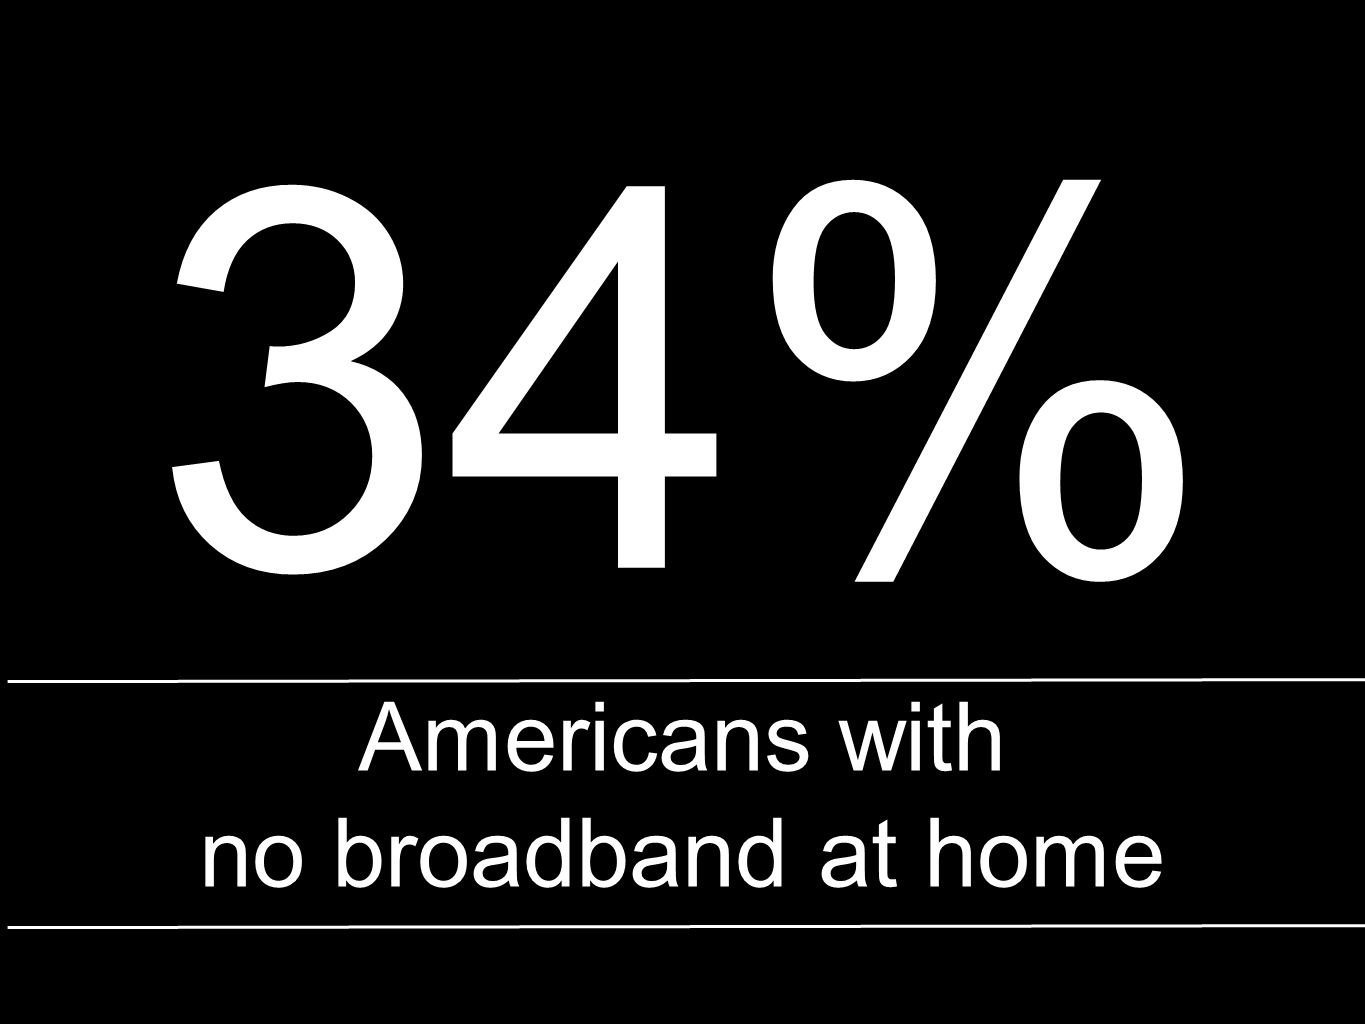 21% Americans with no internet at home